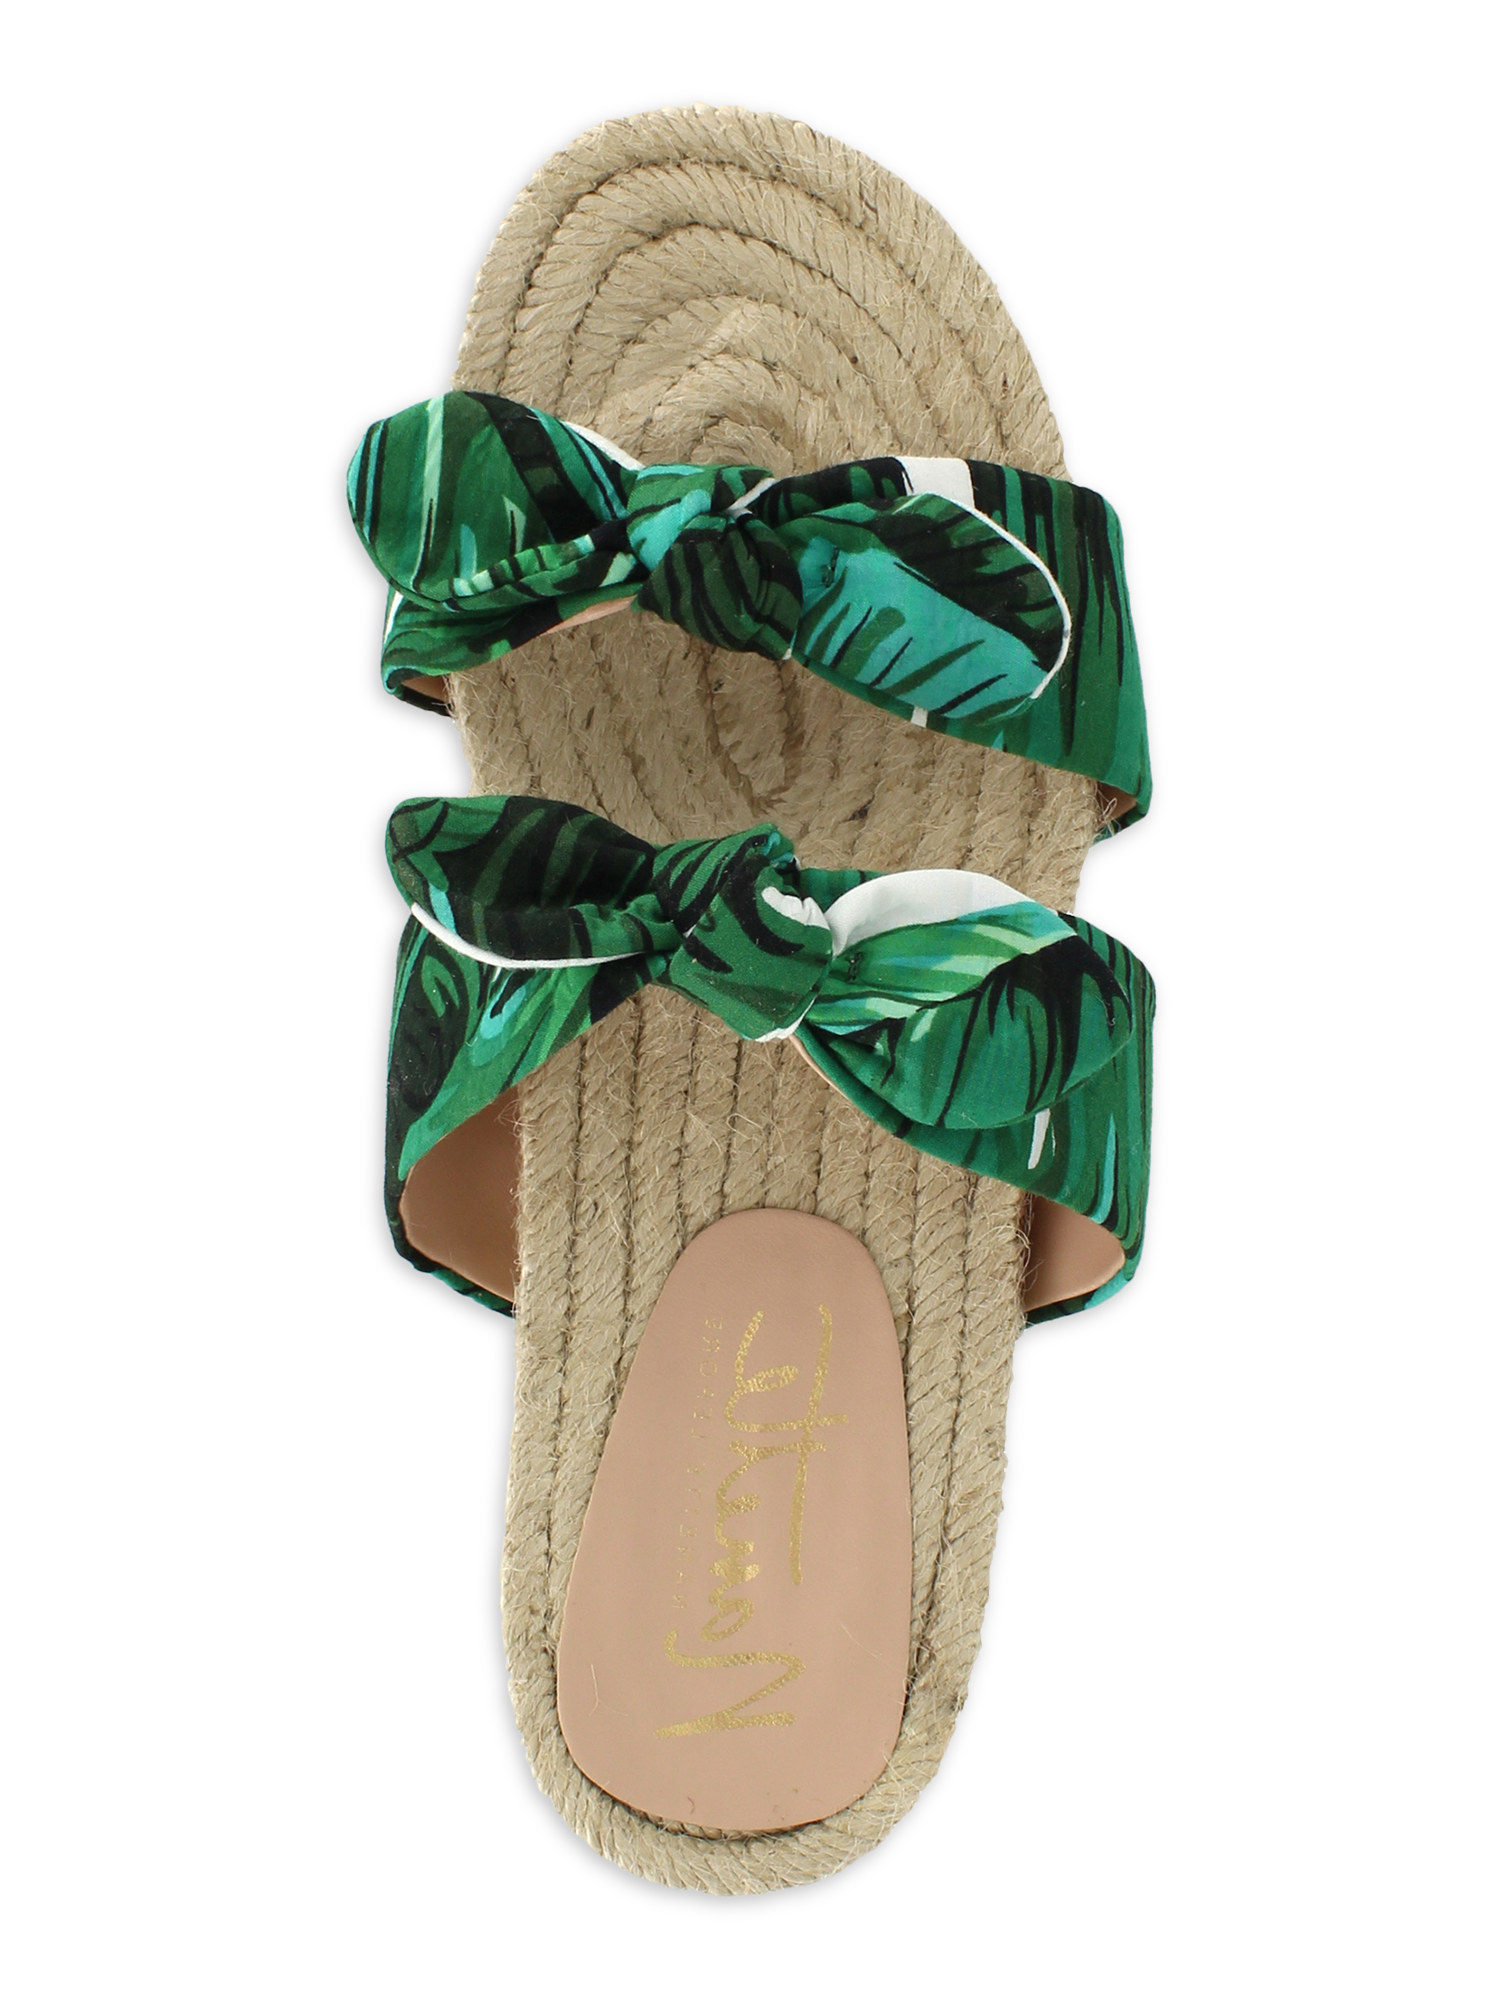 A sandal with a green palm print and a flat woven espadrille sole